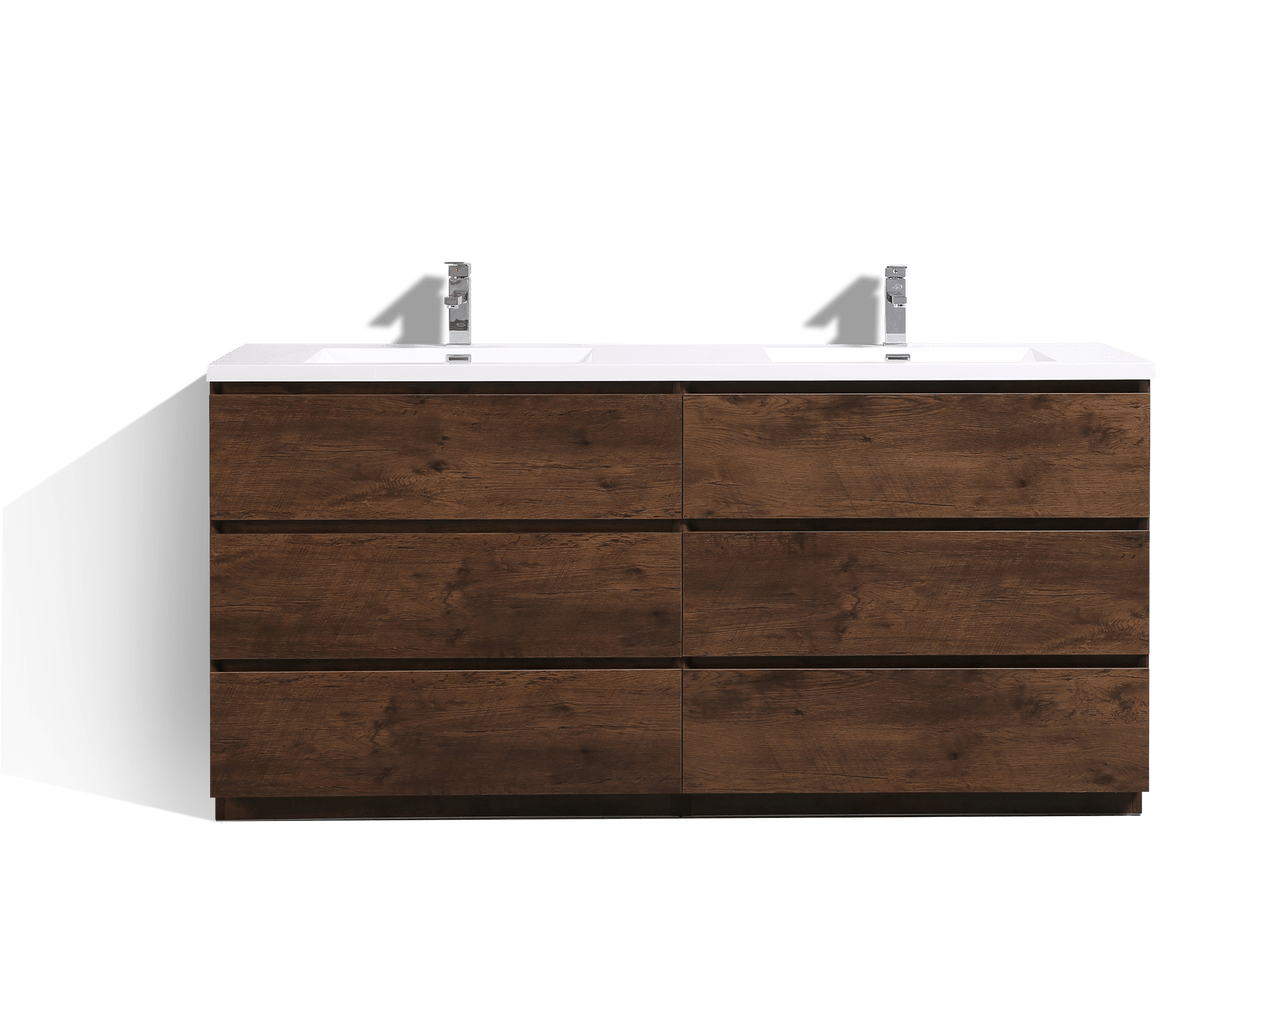 Bathroom Vanity 72 Double Sink Moa 72 Double Sink Rosewood Modern Bathroom Vanity W 6 Drawers And Acrylic Sink